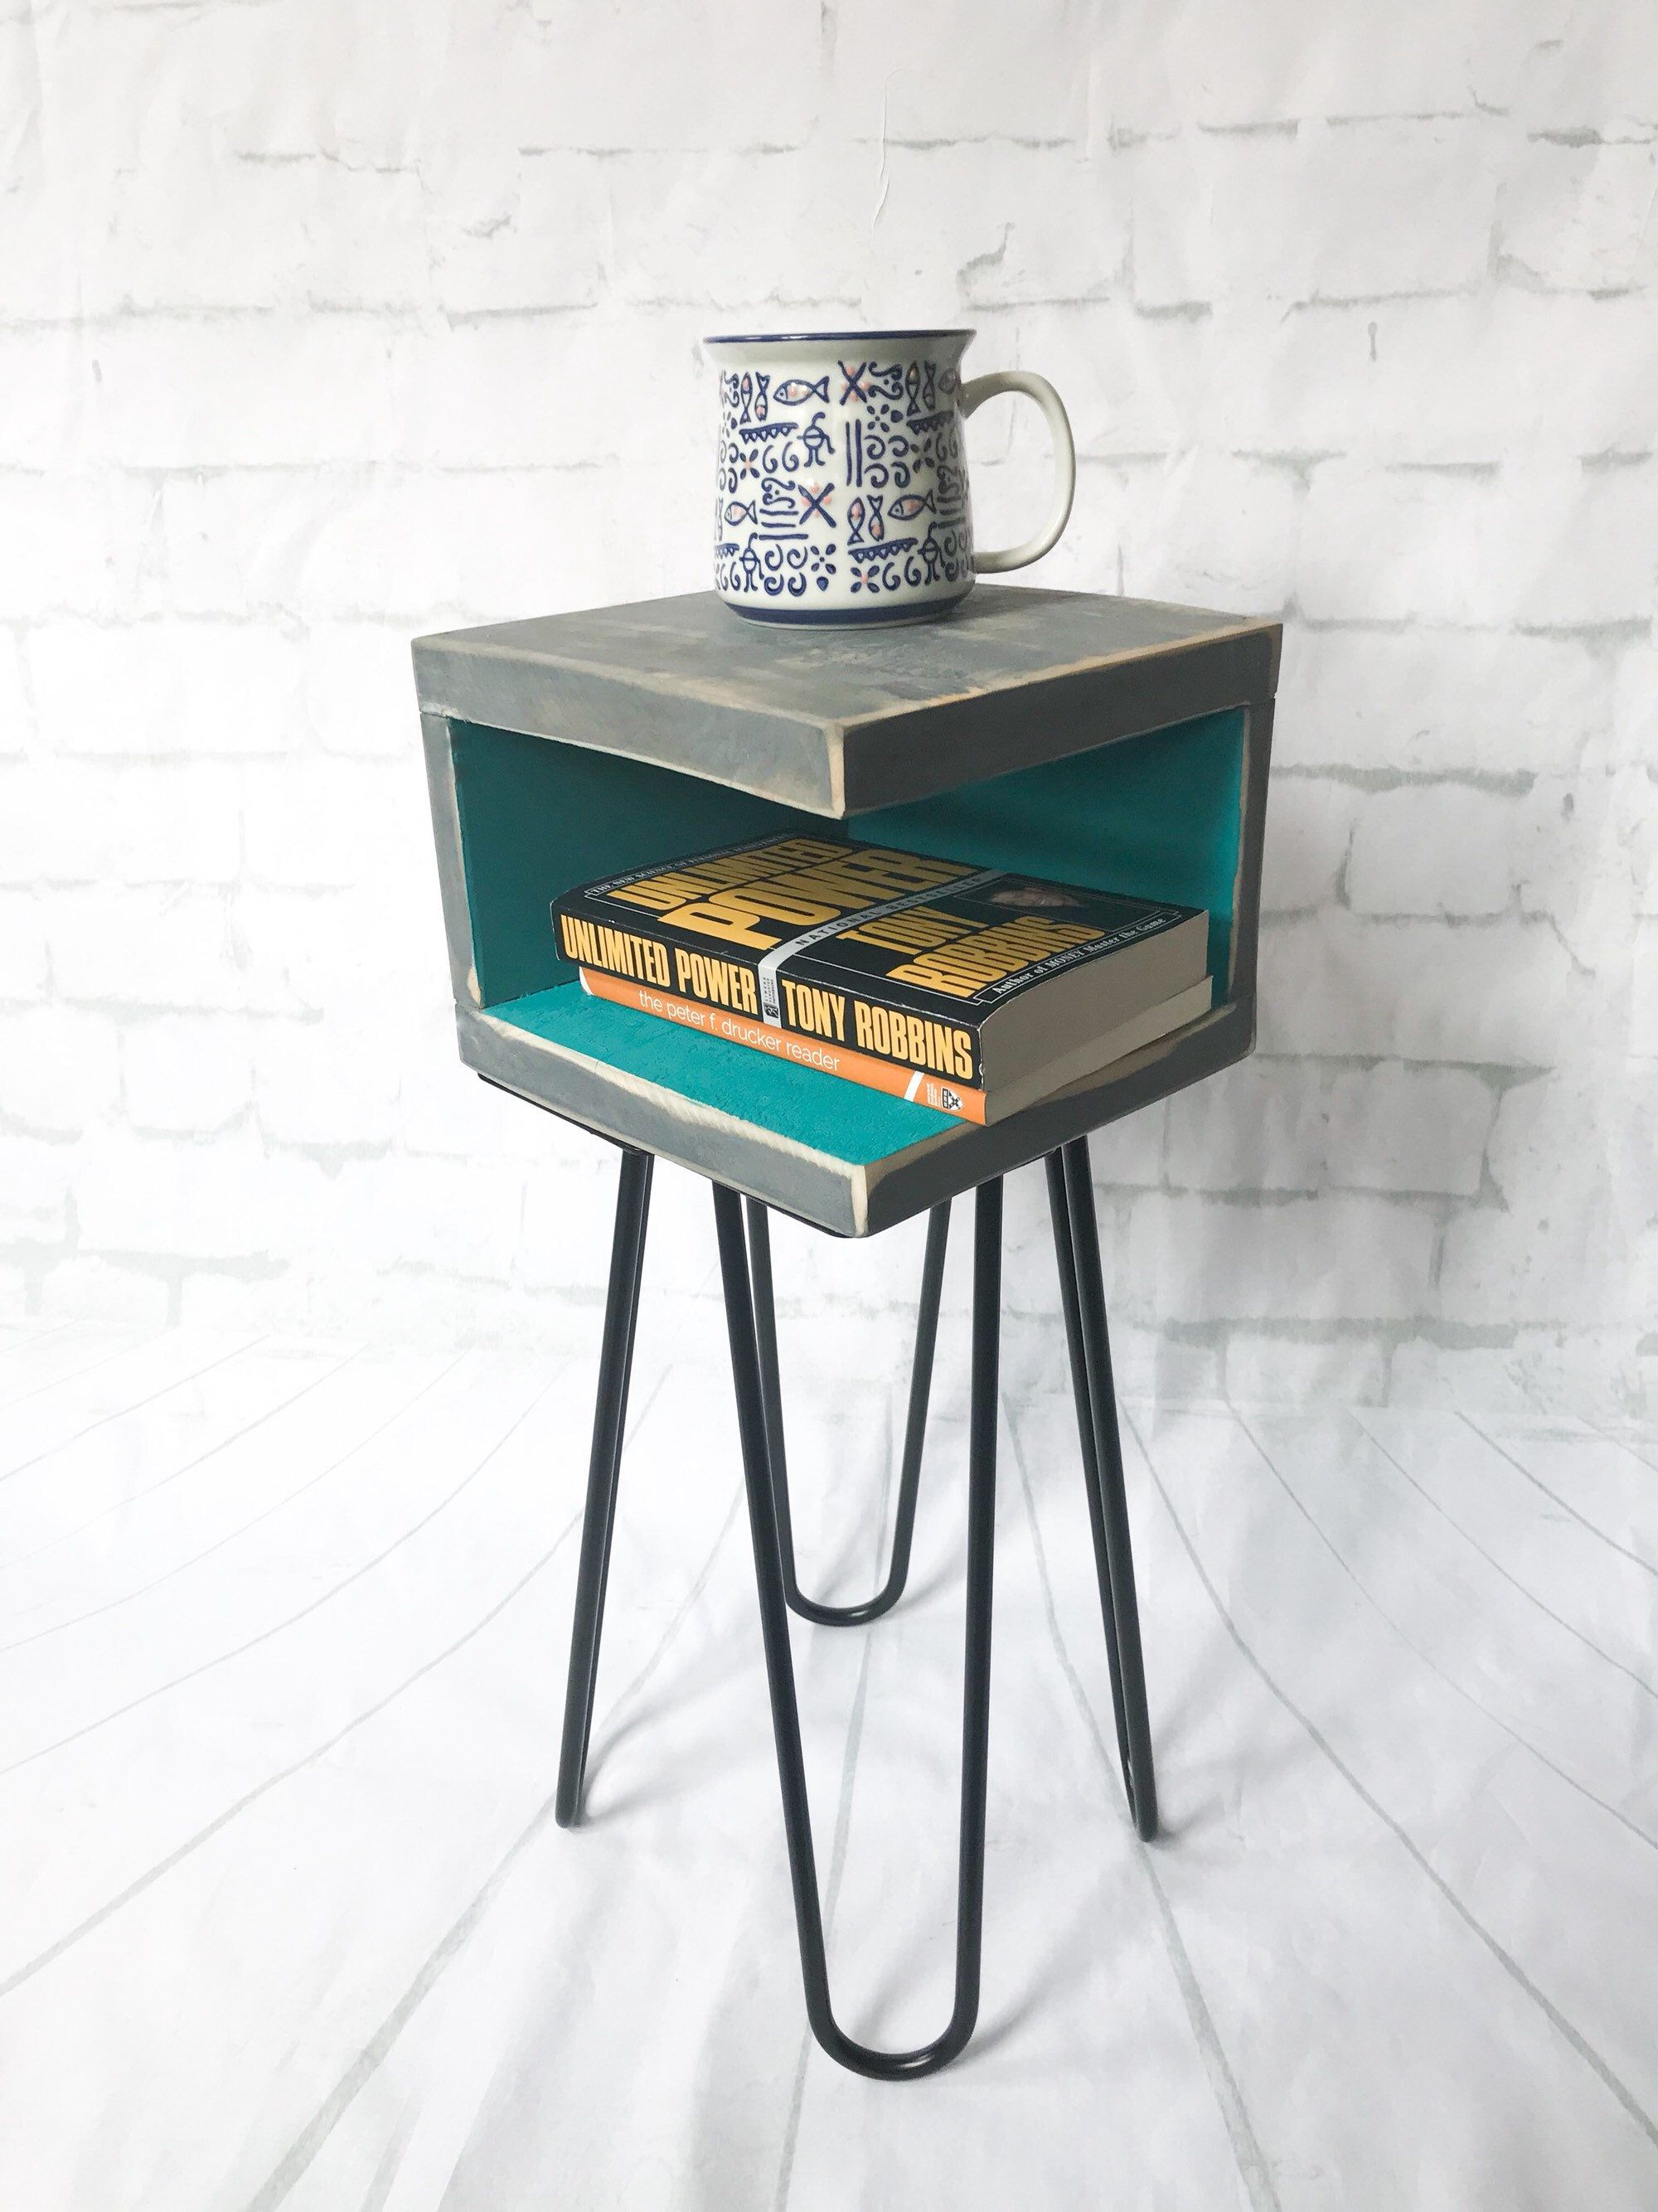 handmade nightstand modern mid century rustic retro small teal blue accent table side end tables midcentury hairpin distressed reclaimed pier one chairs clearance dining room